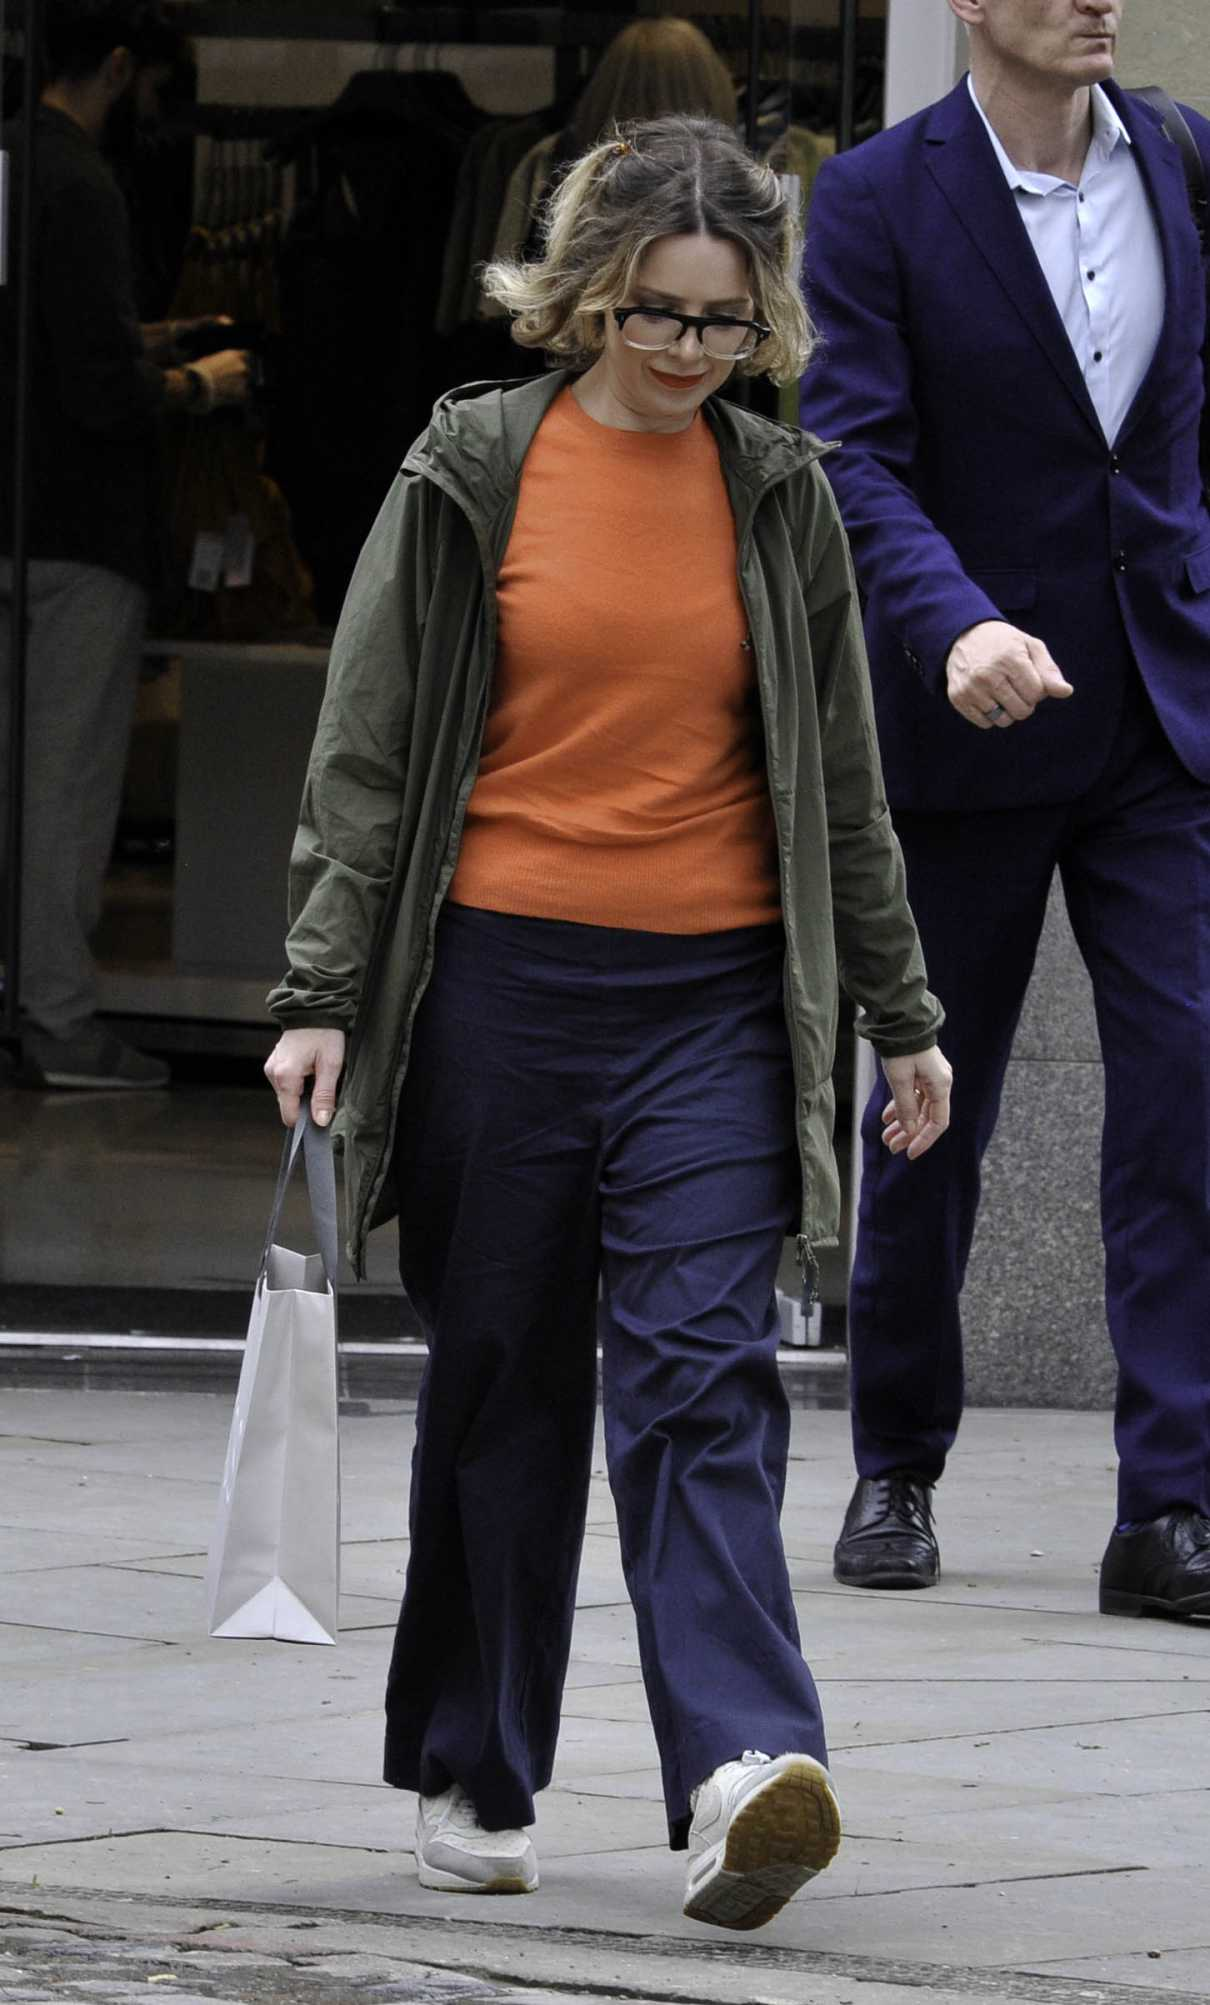 Sally Carman in an Orange Tee